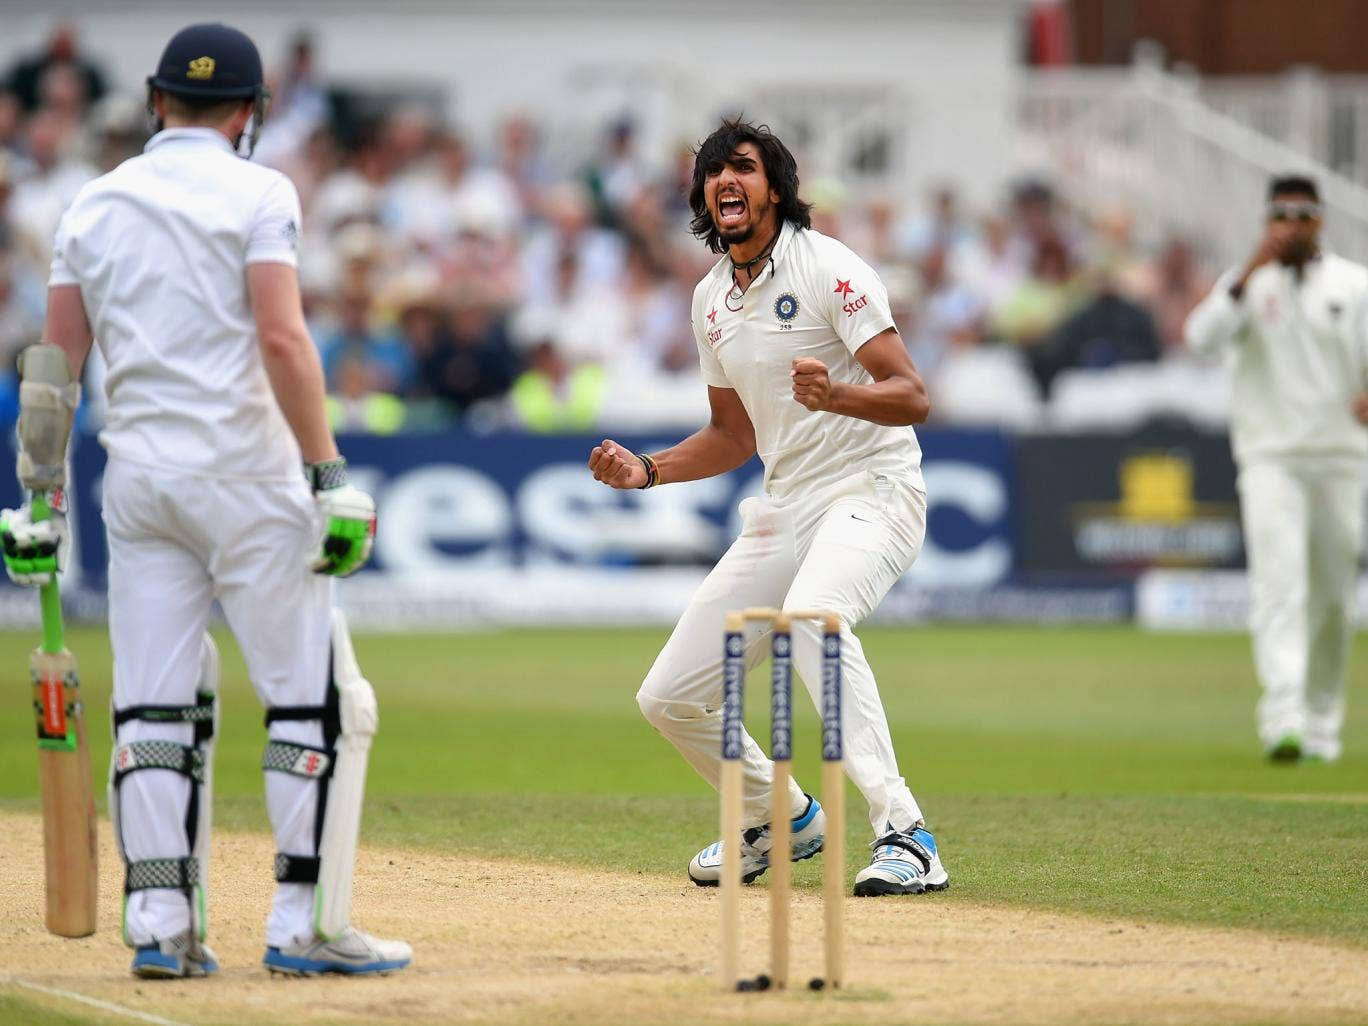 Indian paceman Ishant Sharma celebrates taking the wicket of England's Sam Robson at Trent Bridge yesterday